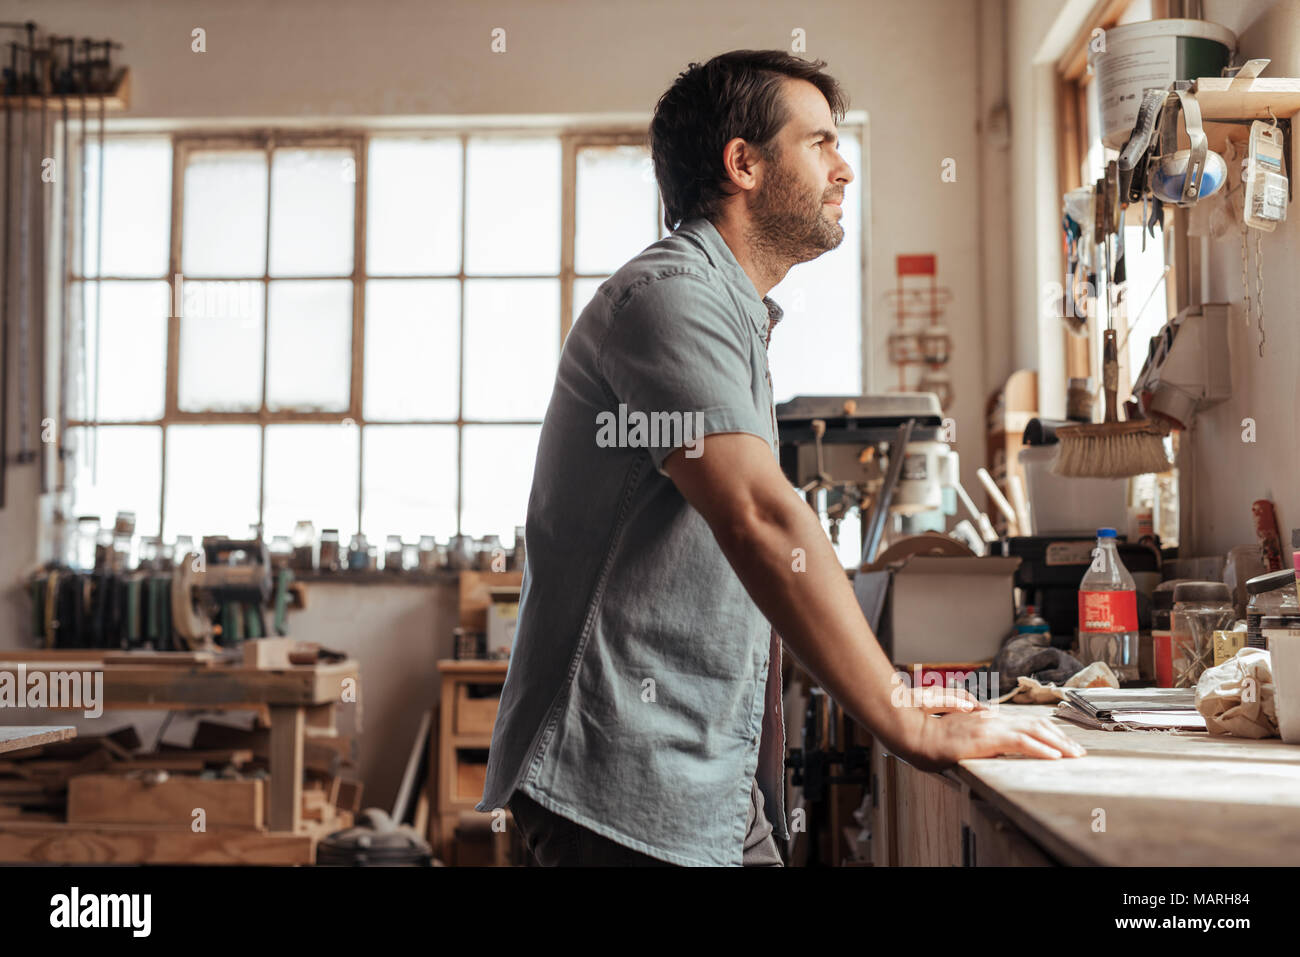 Skilled young woodworker leaning on a workbench deep in thought - Stock Image